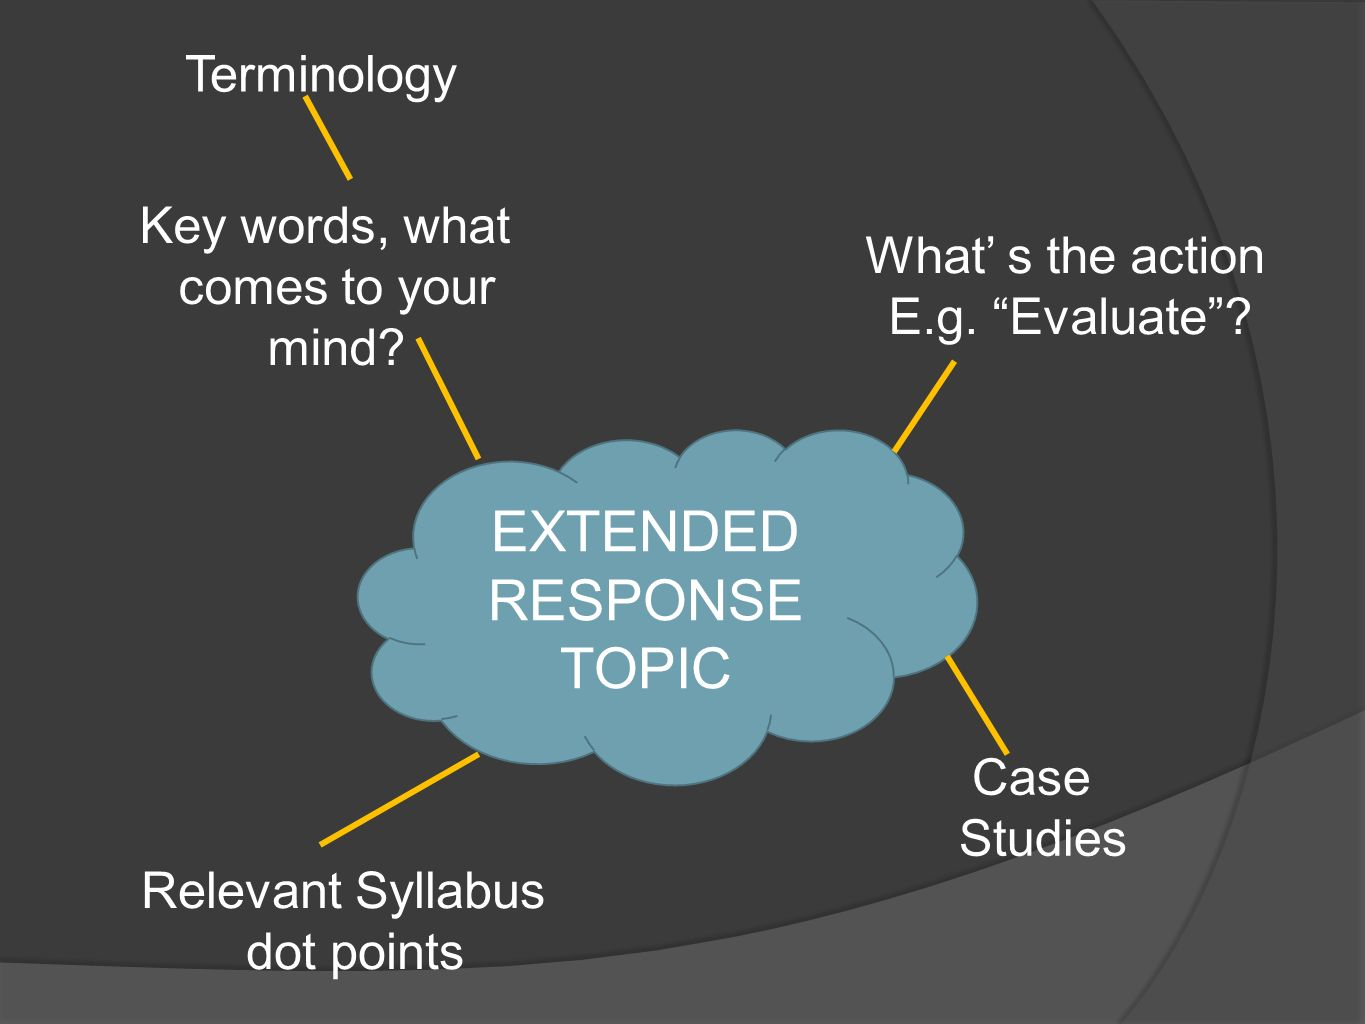 EXTENDED RESPONSE TOPIC